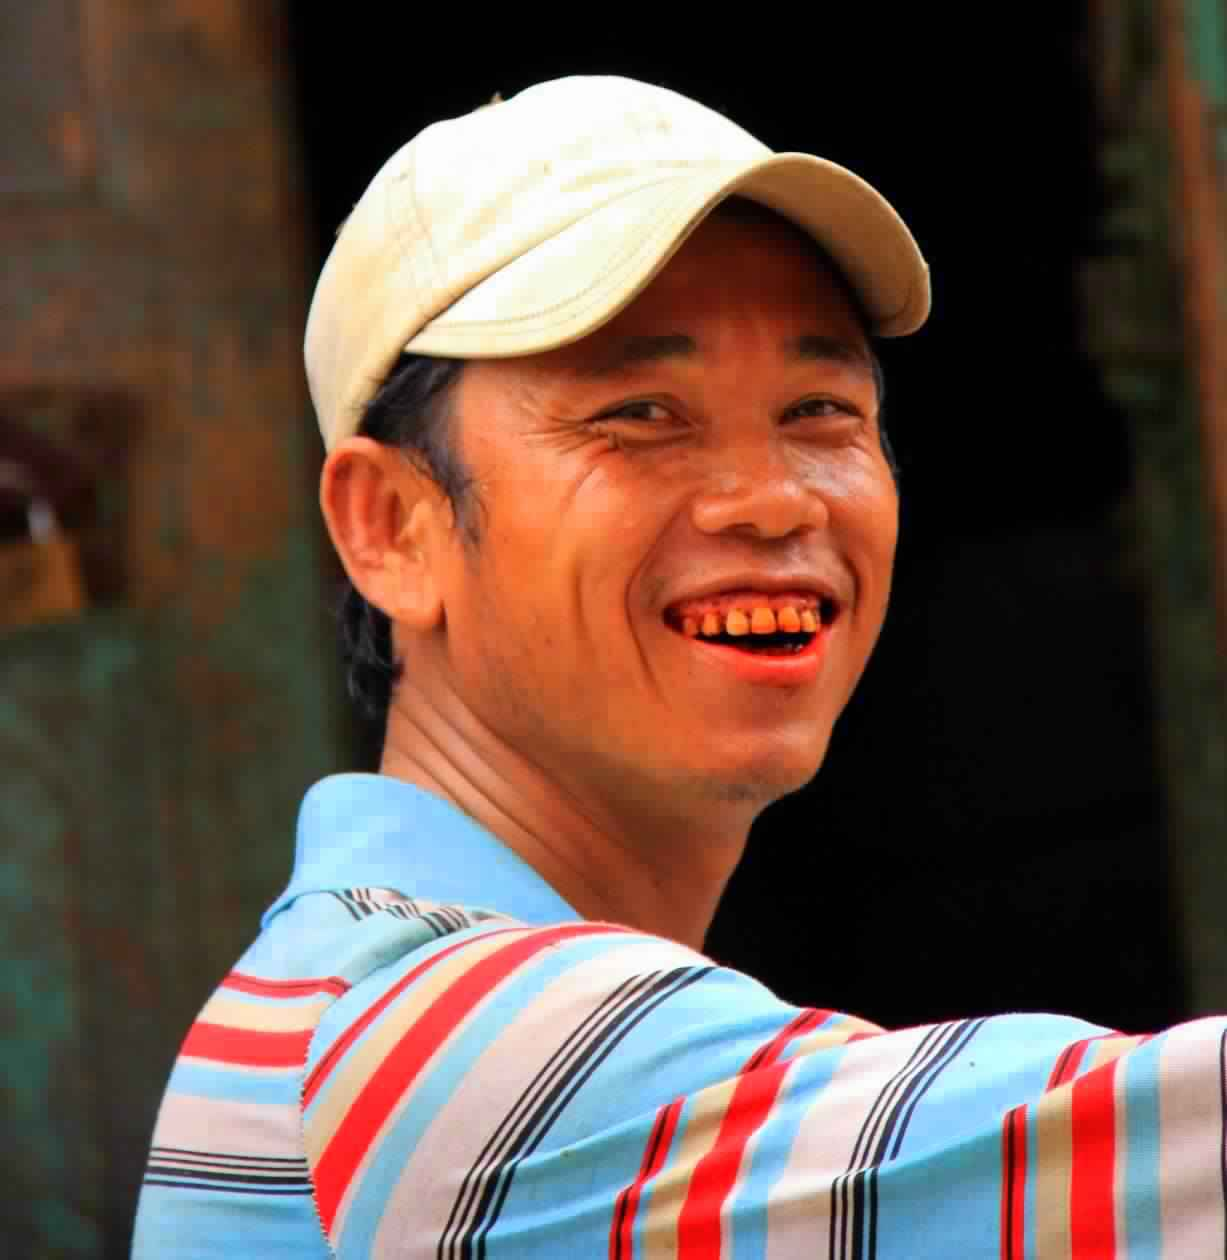 A young man proudly shows off his red stained teeth in Yangon